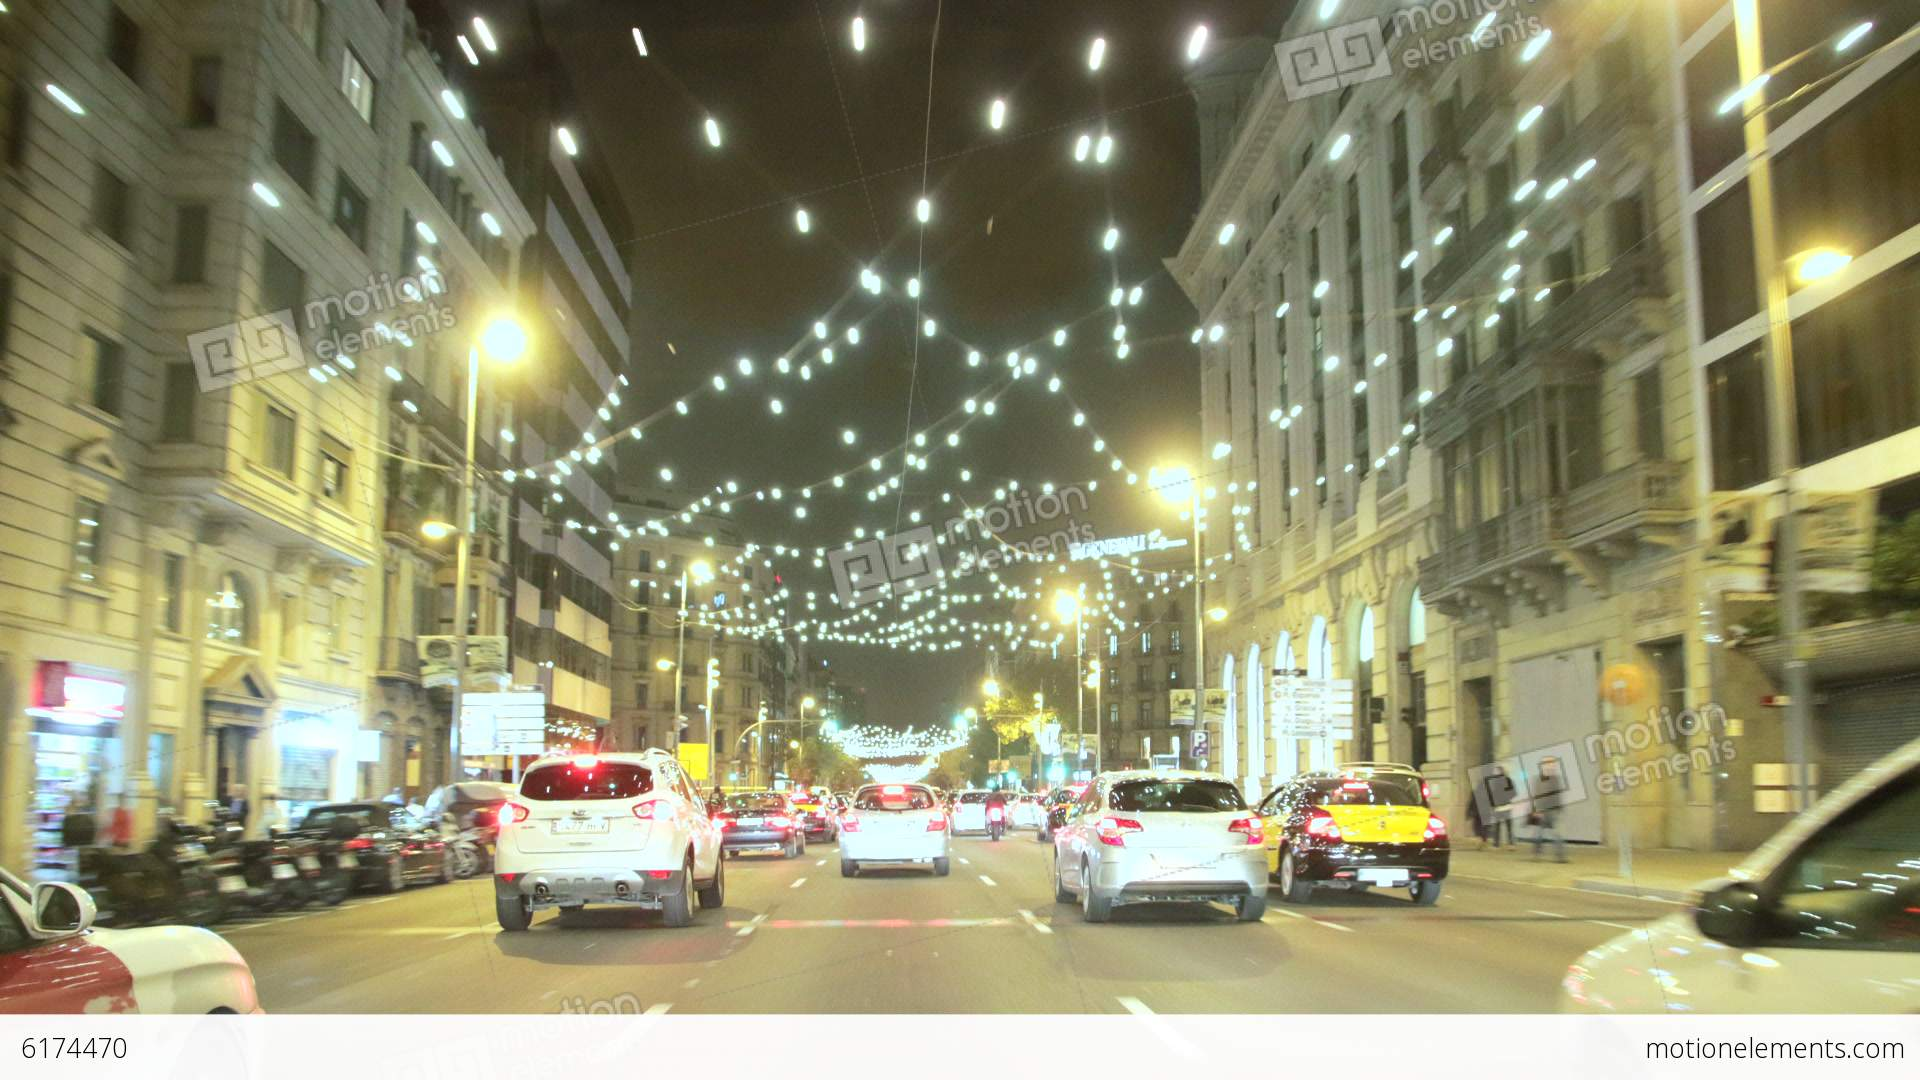 Barcelona Christmas Street Lights Decorations and Stock Video Footage